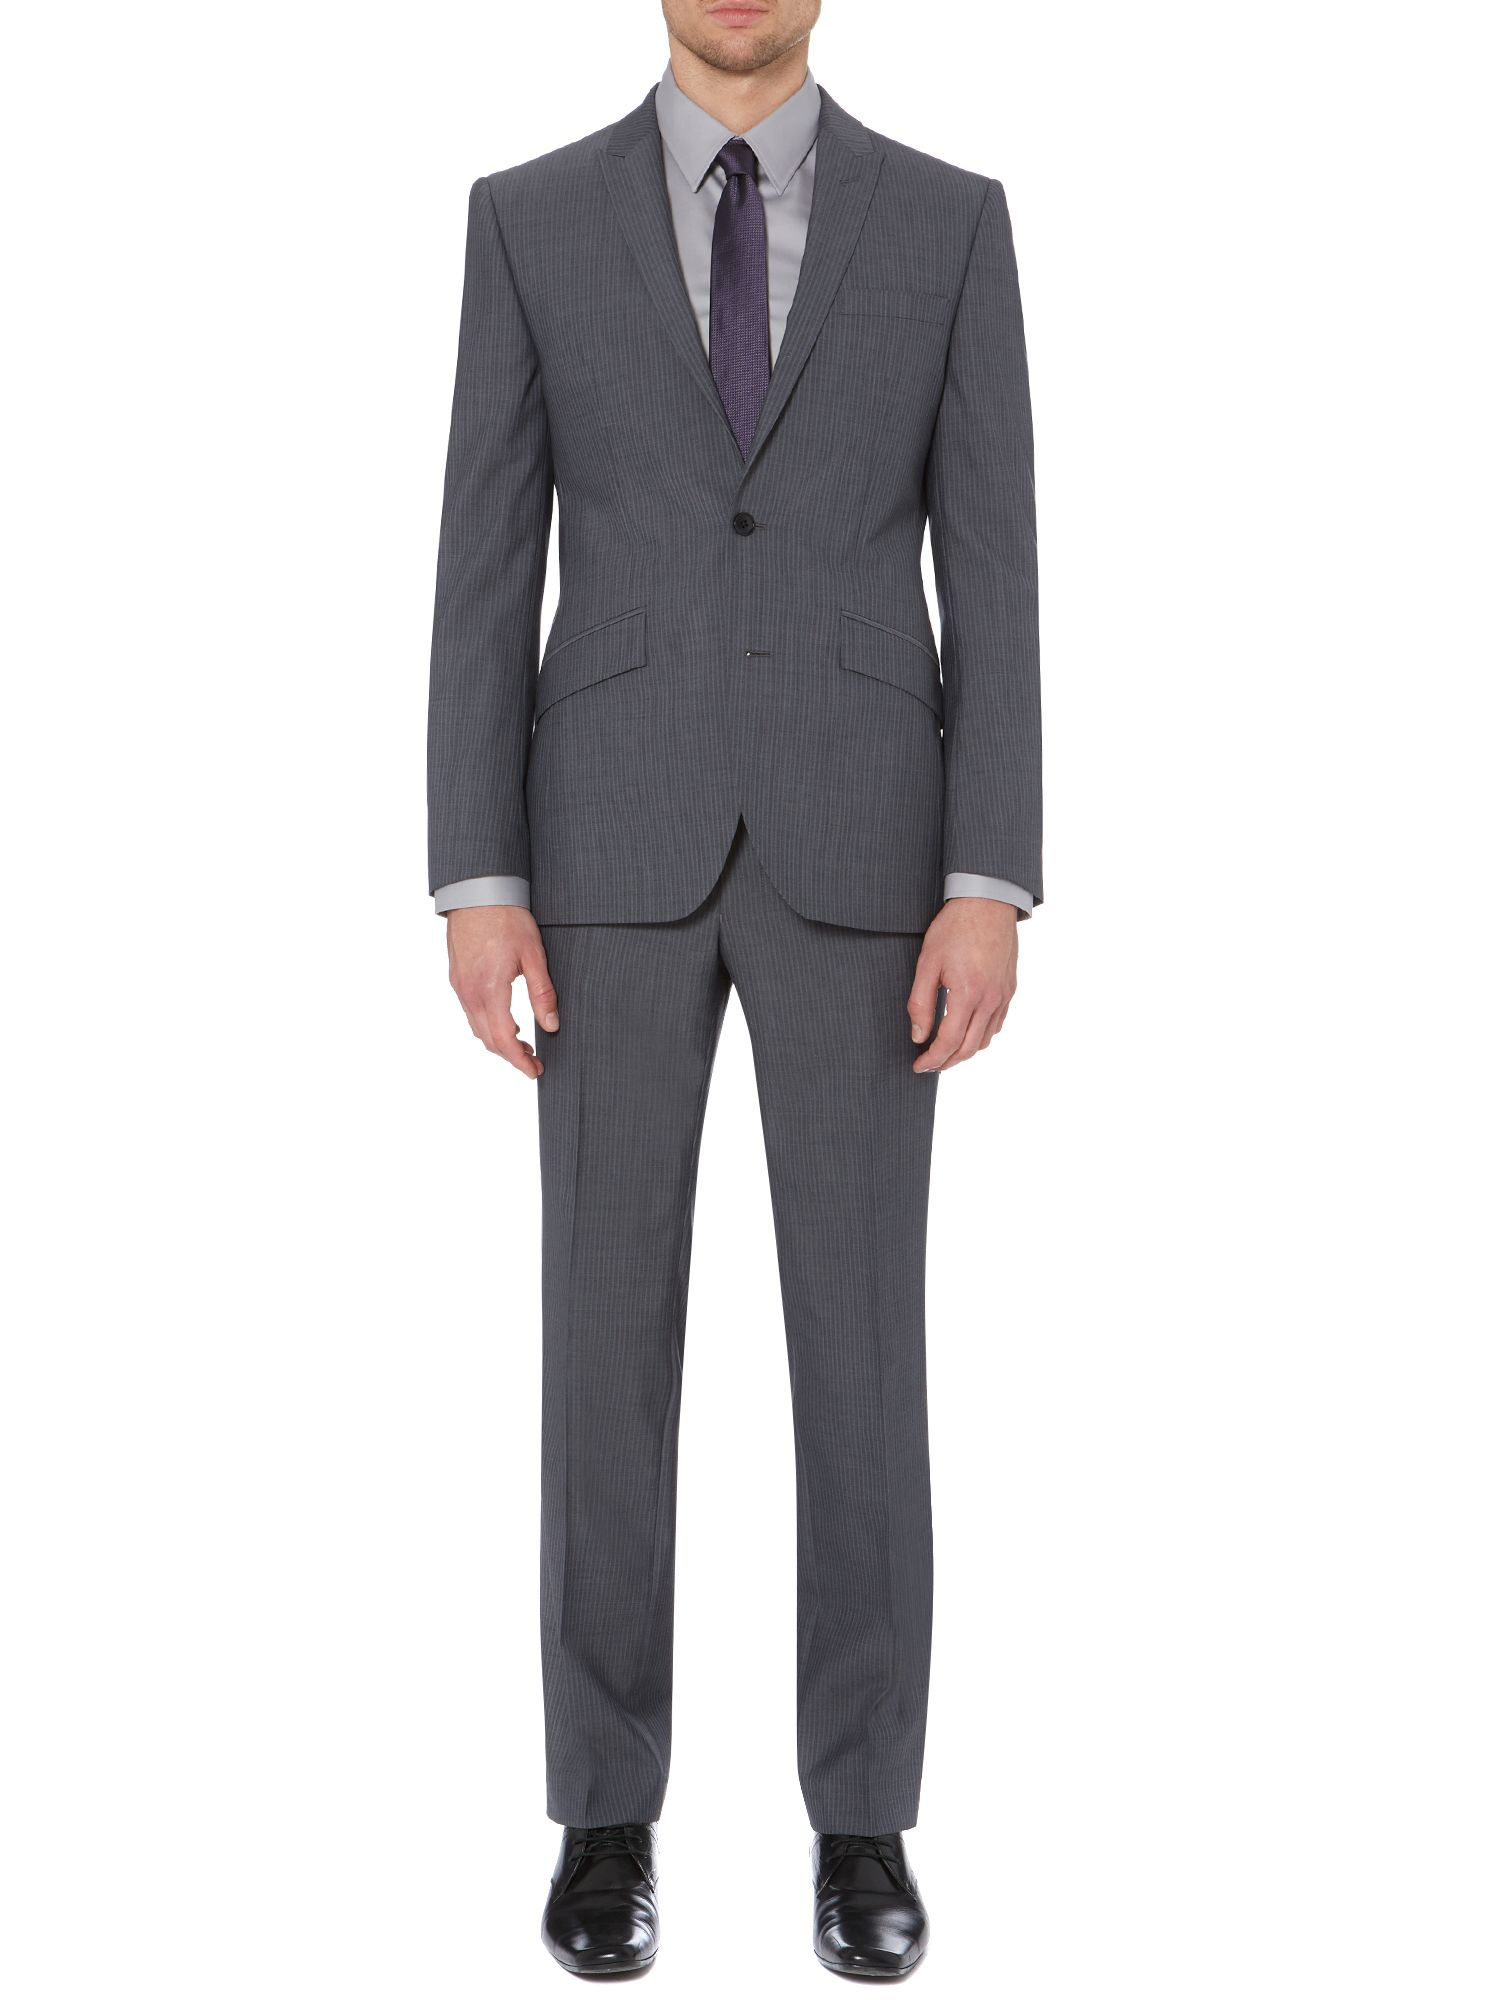 Arion single breasted shadow stripe suit